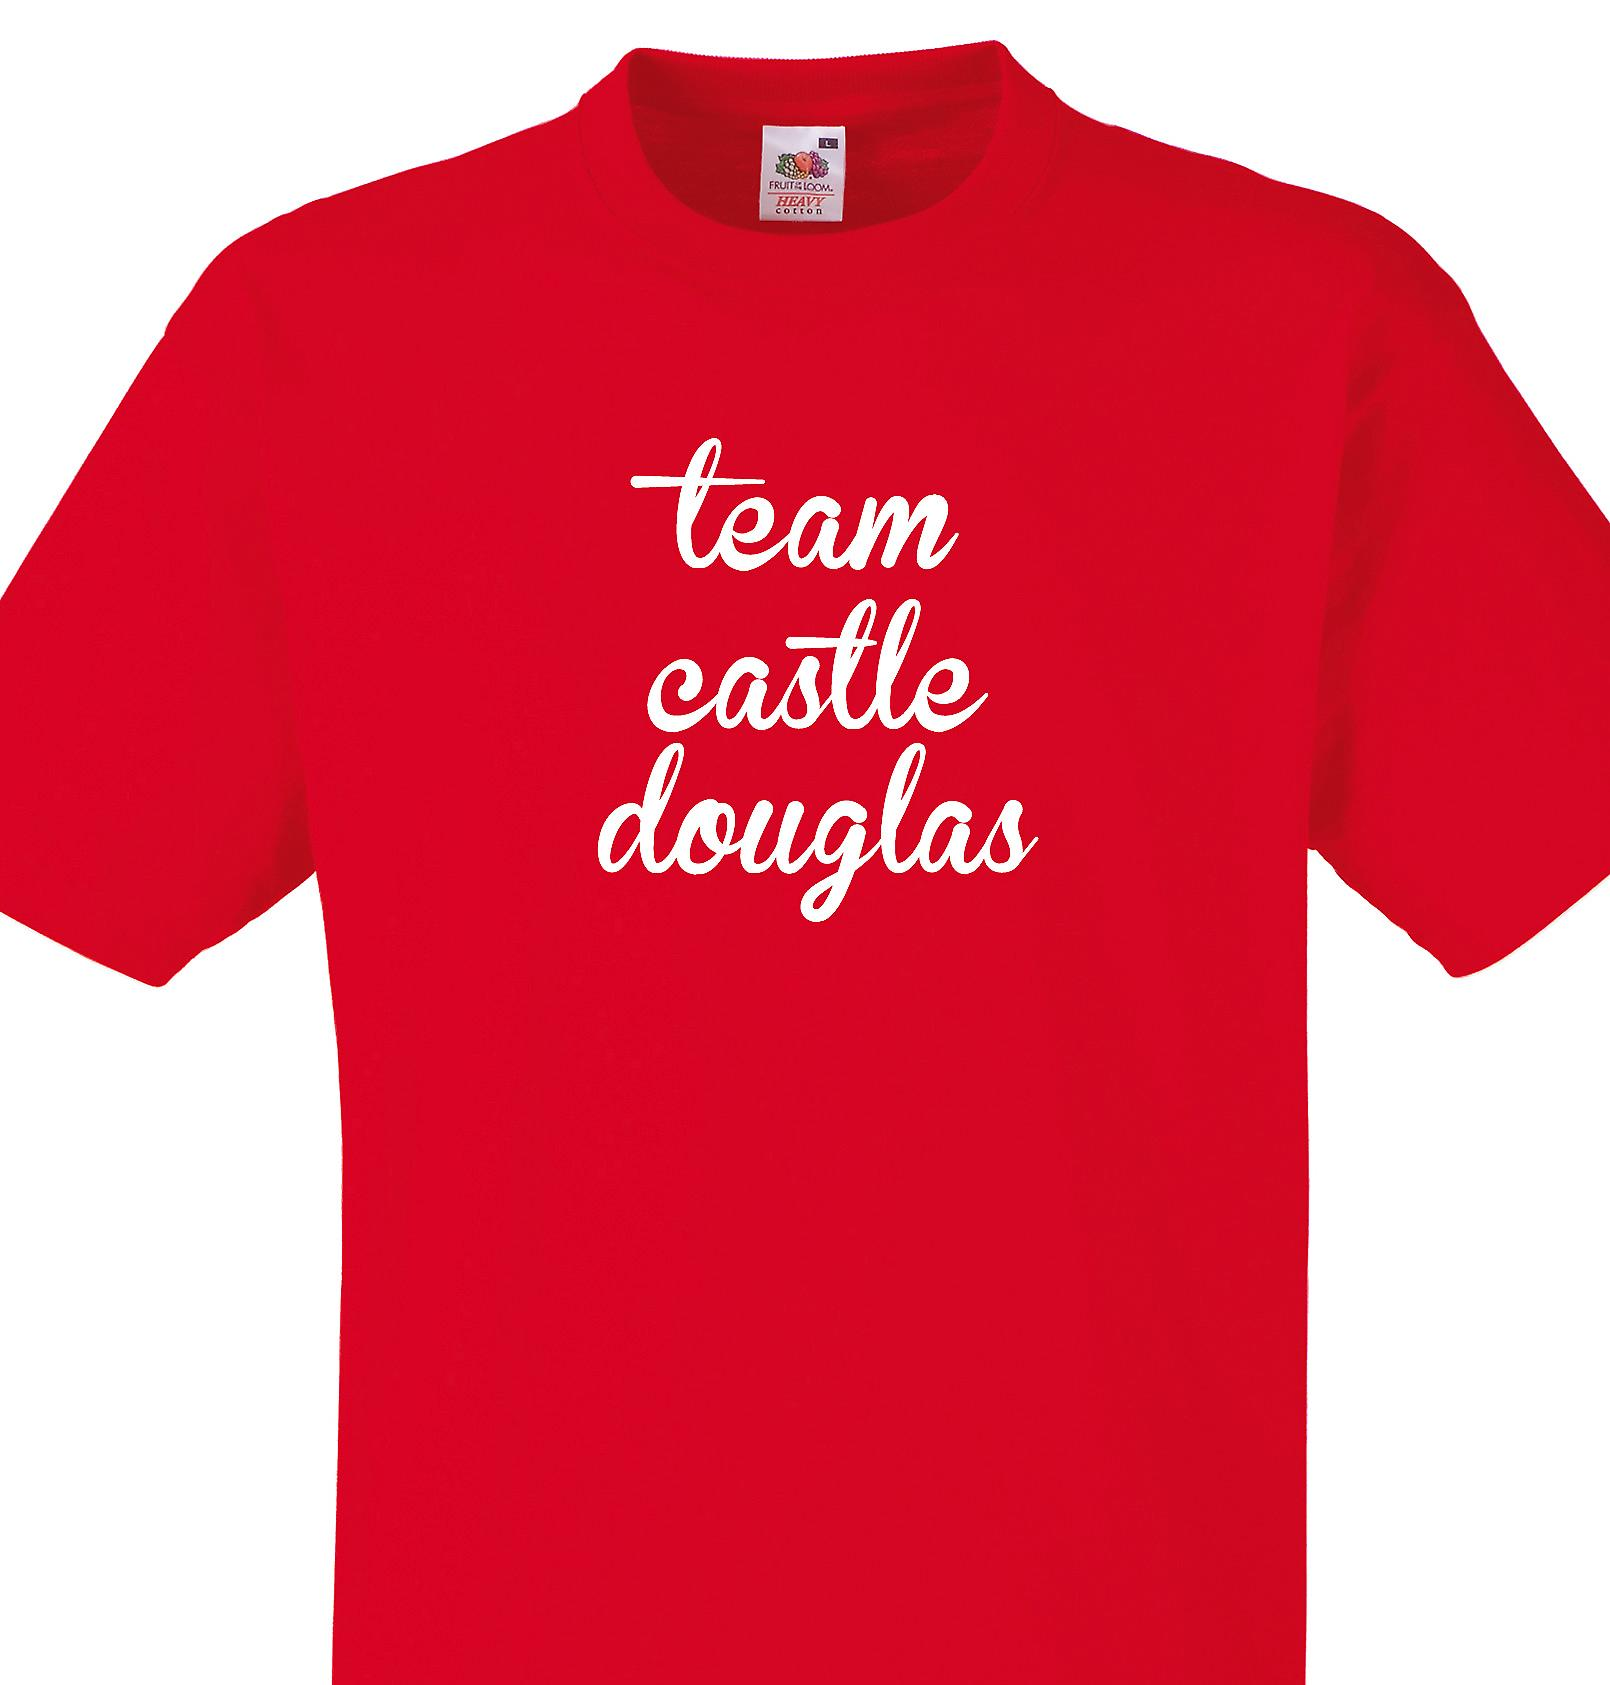 Team Castle douglas Red T shirt